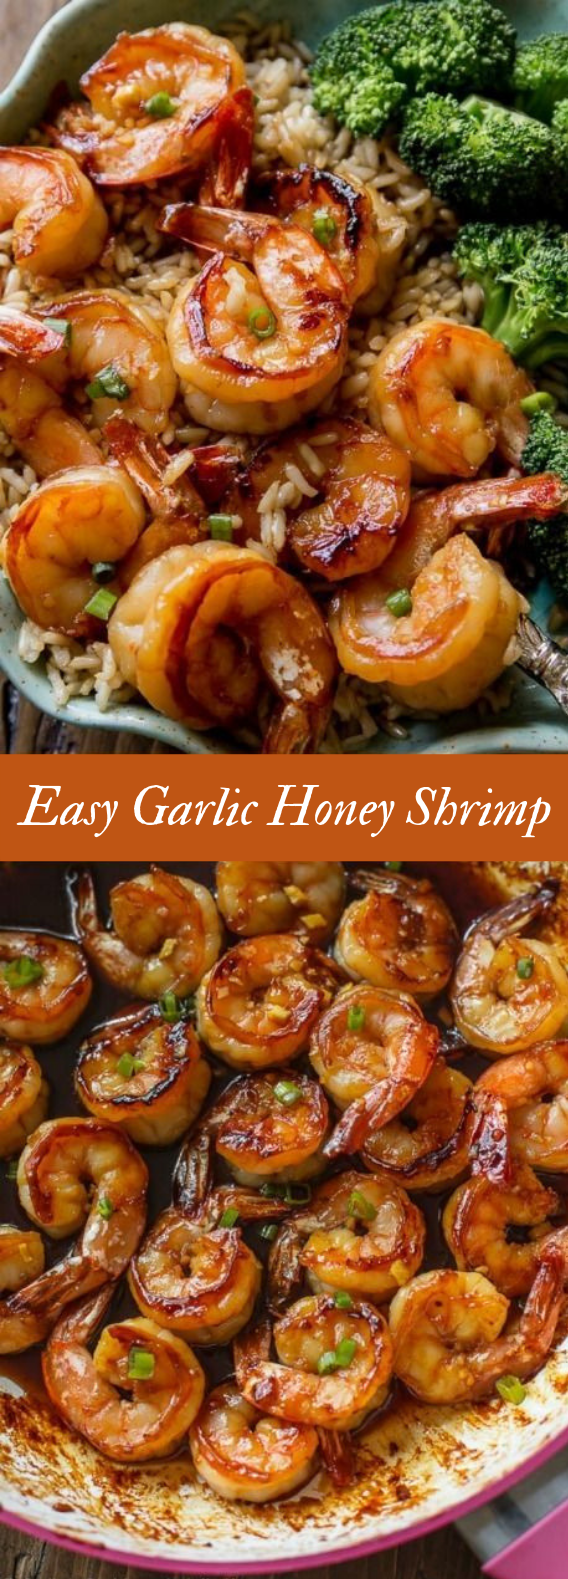 Quick & Healthy Dinner: 20 Minute Honey Garlic Shrimp #Recipe #Easy